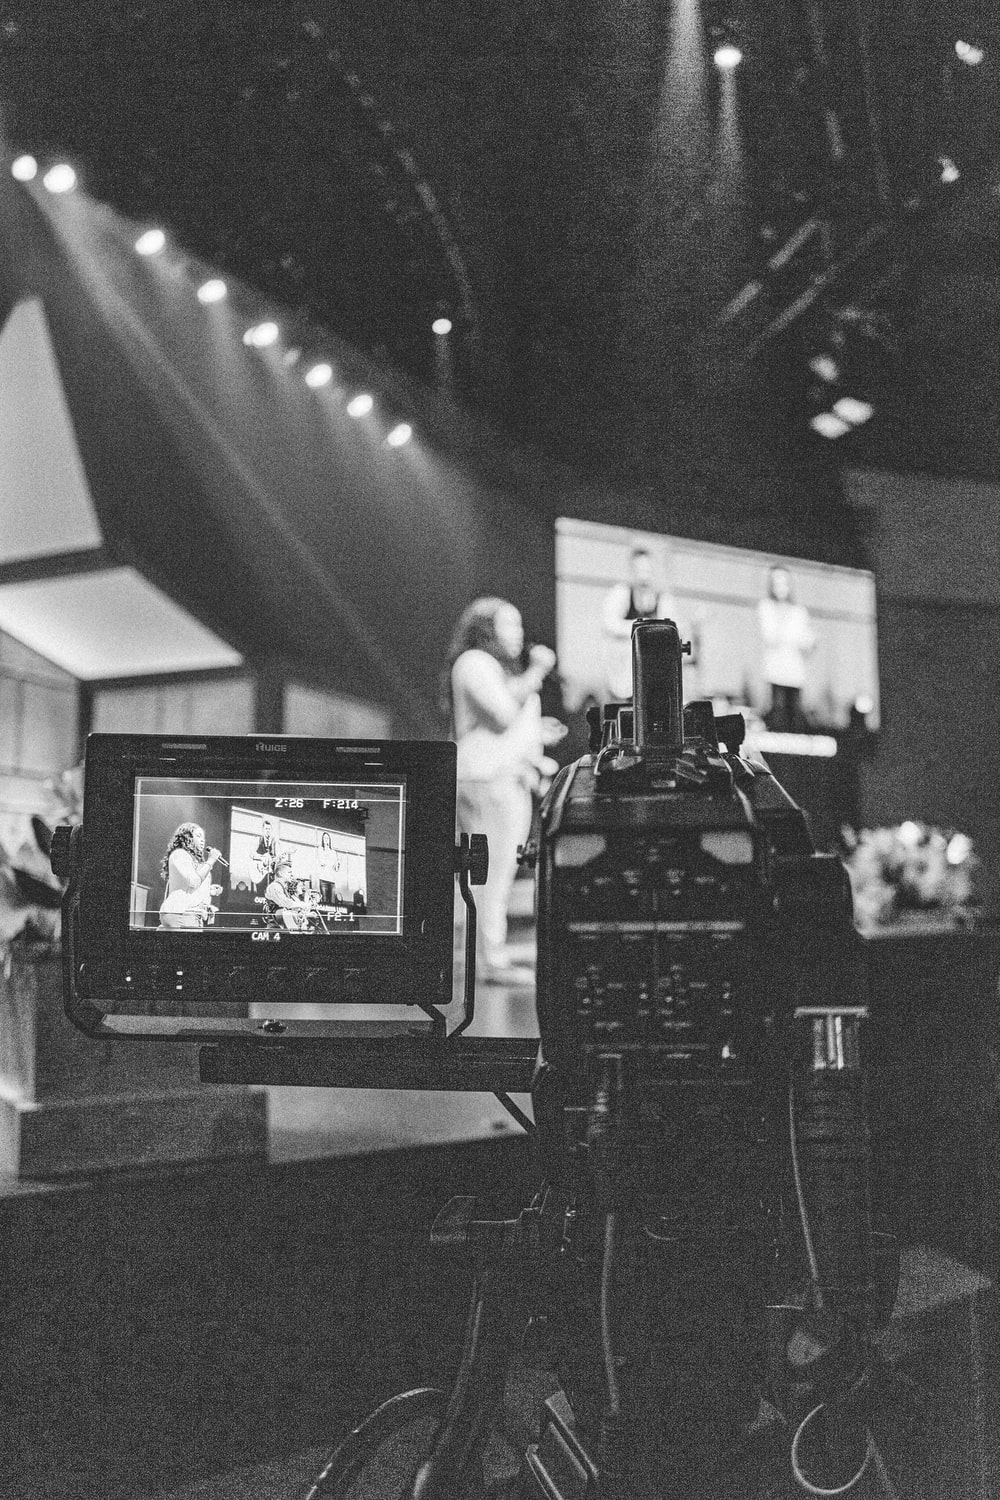 greyscale photography of video camera capturing person standing on stage